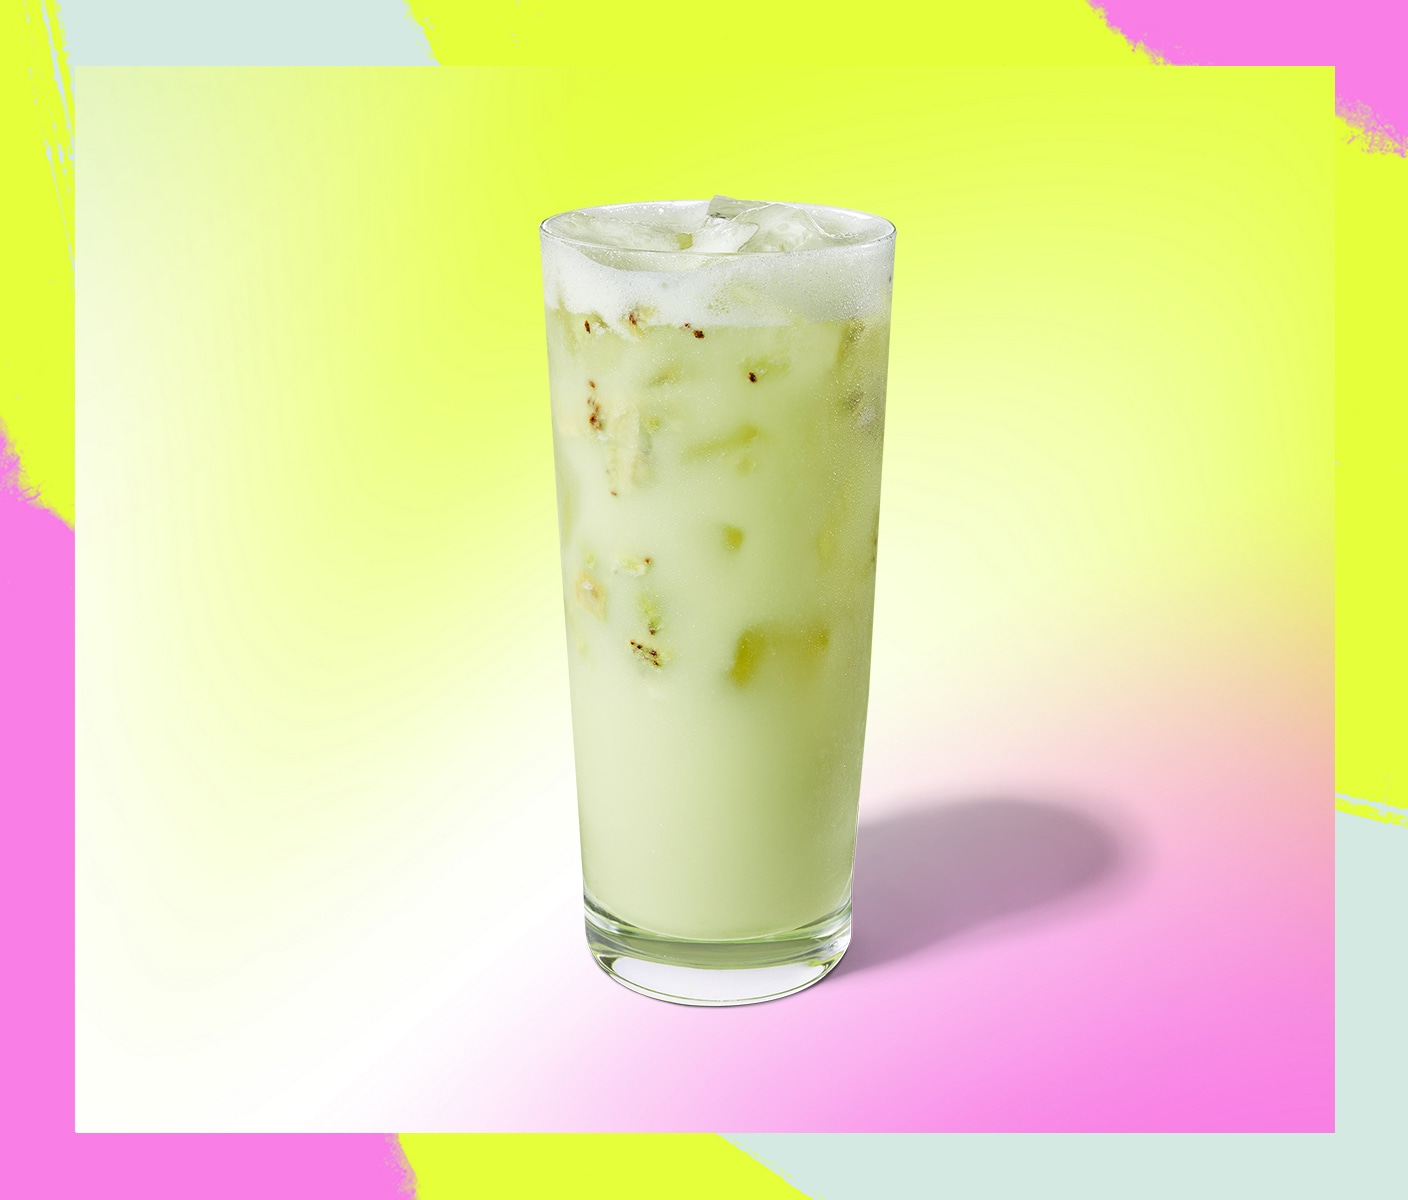 Light-green iced beverage in a glass.